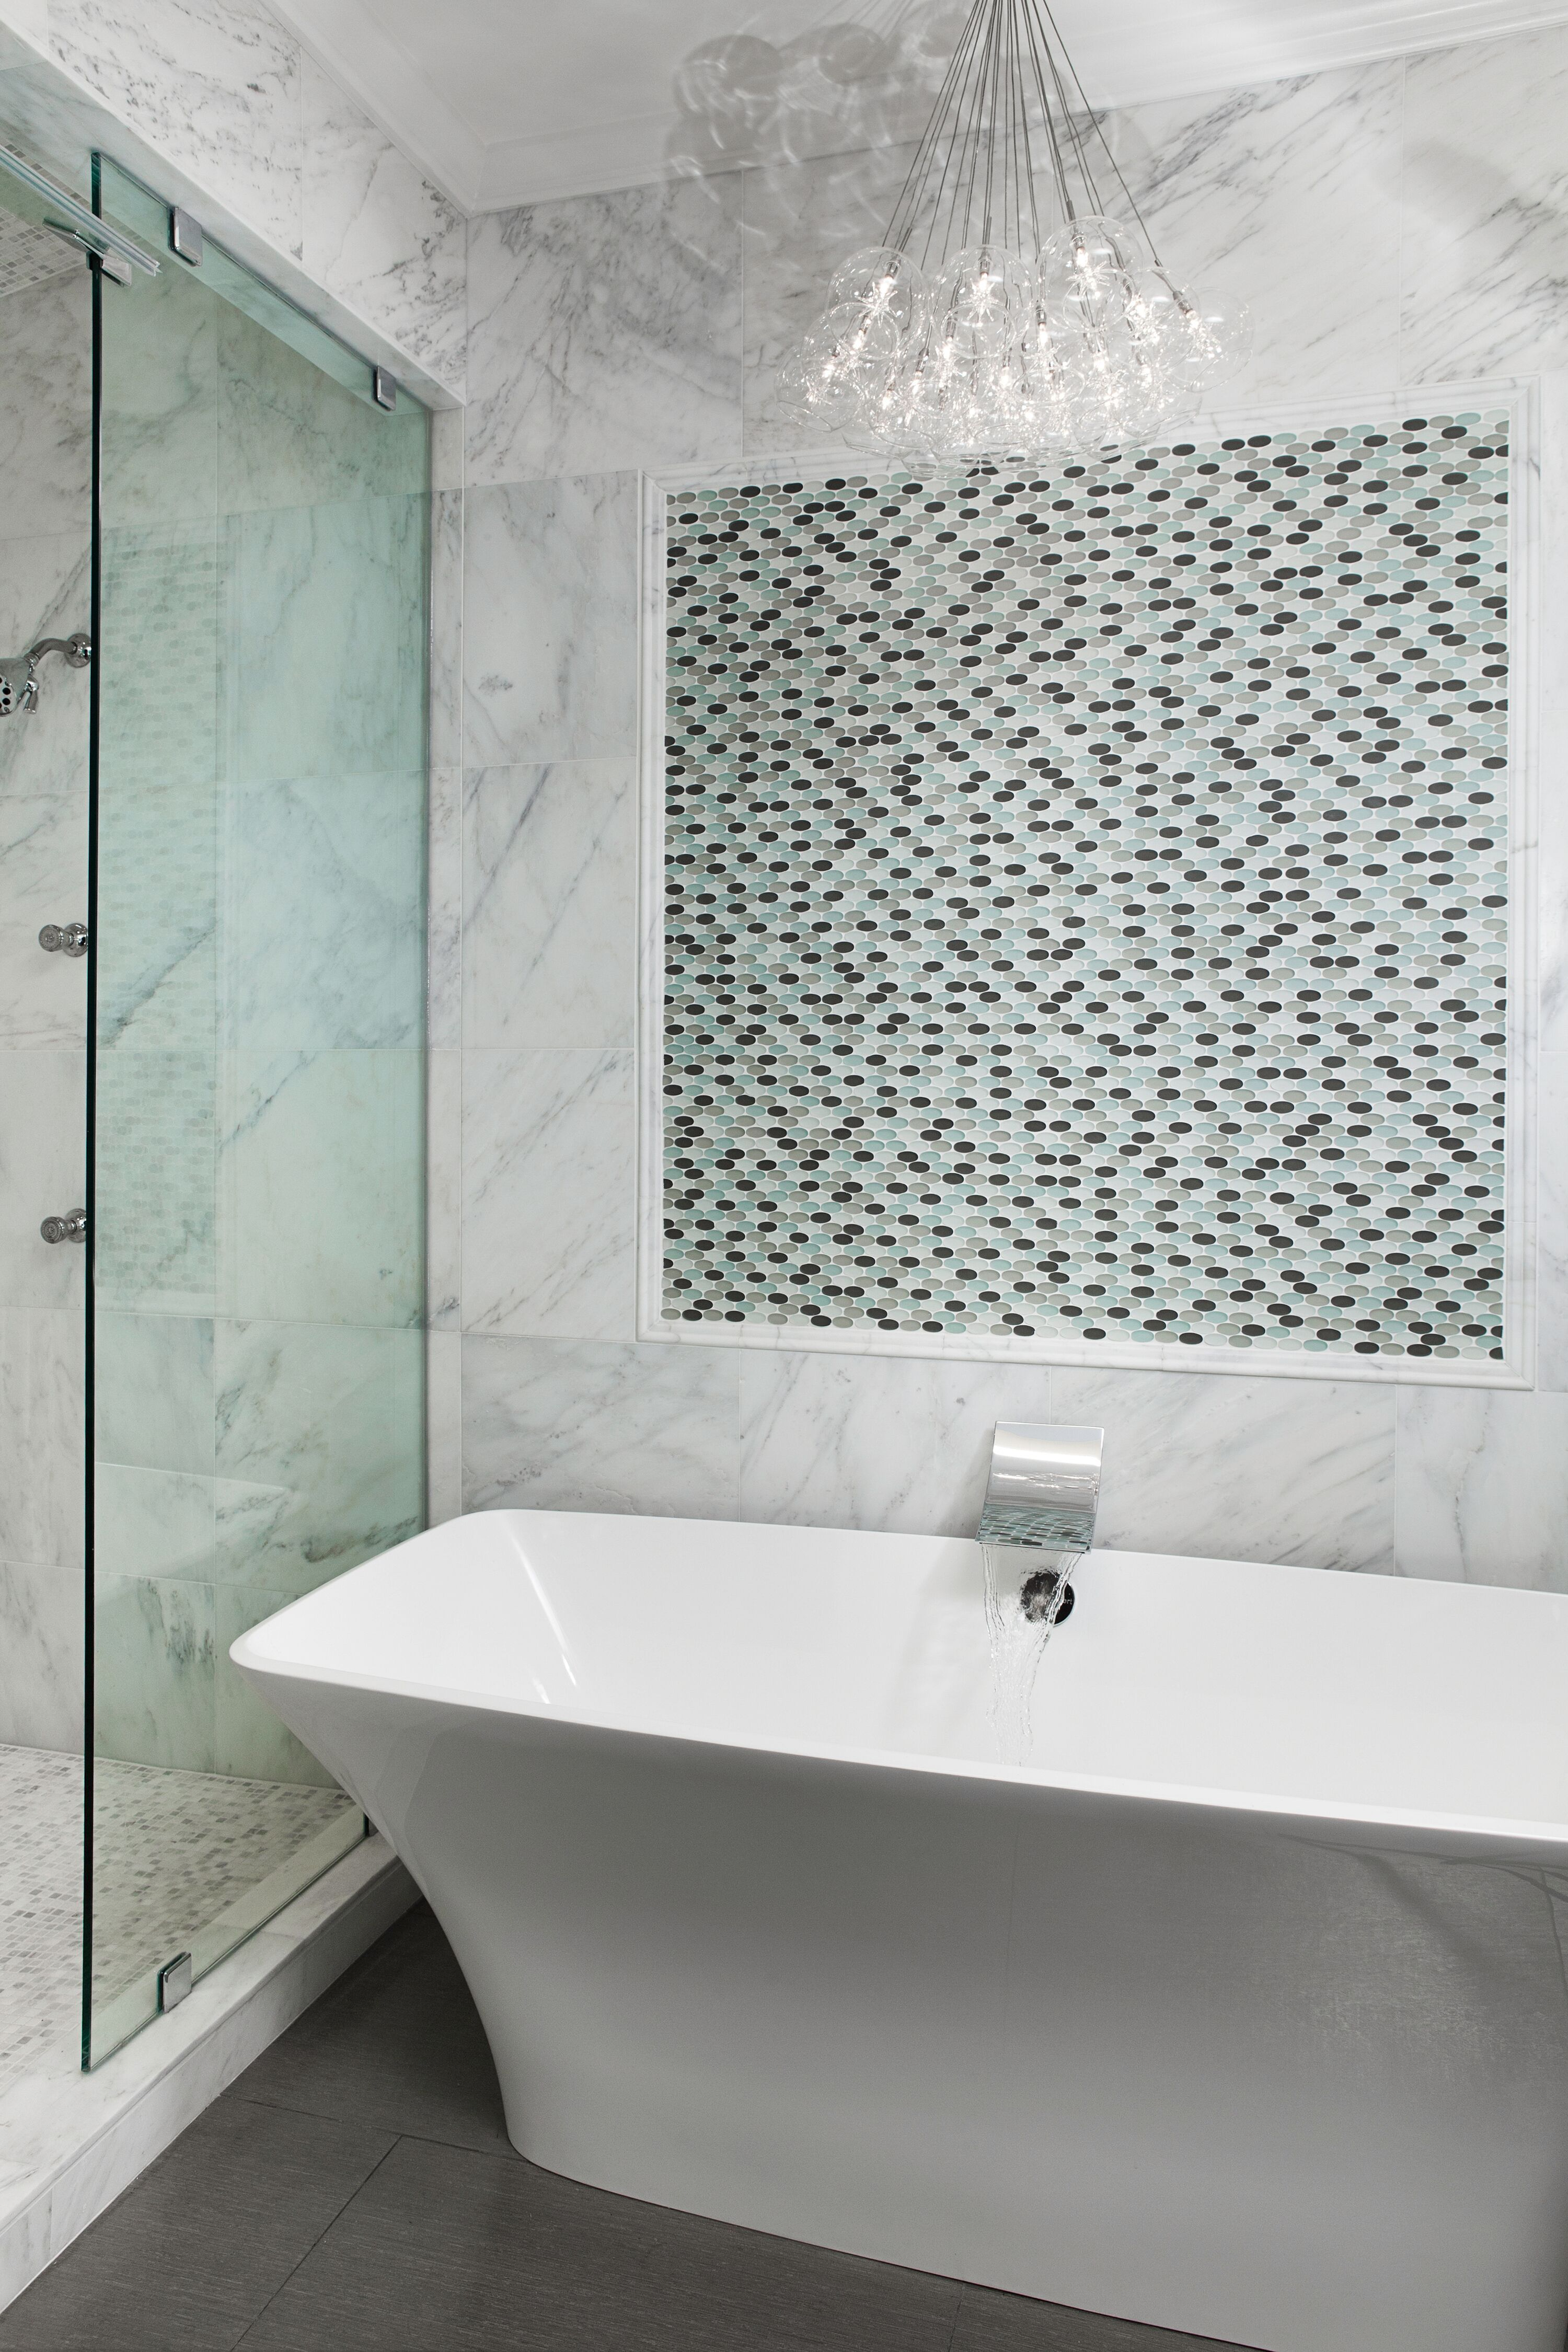 Elegant Bathroom With Freestanding Tub Glass Door And Mosaic Tile